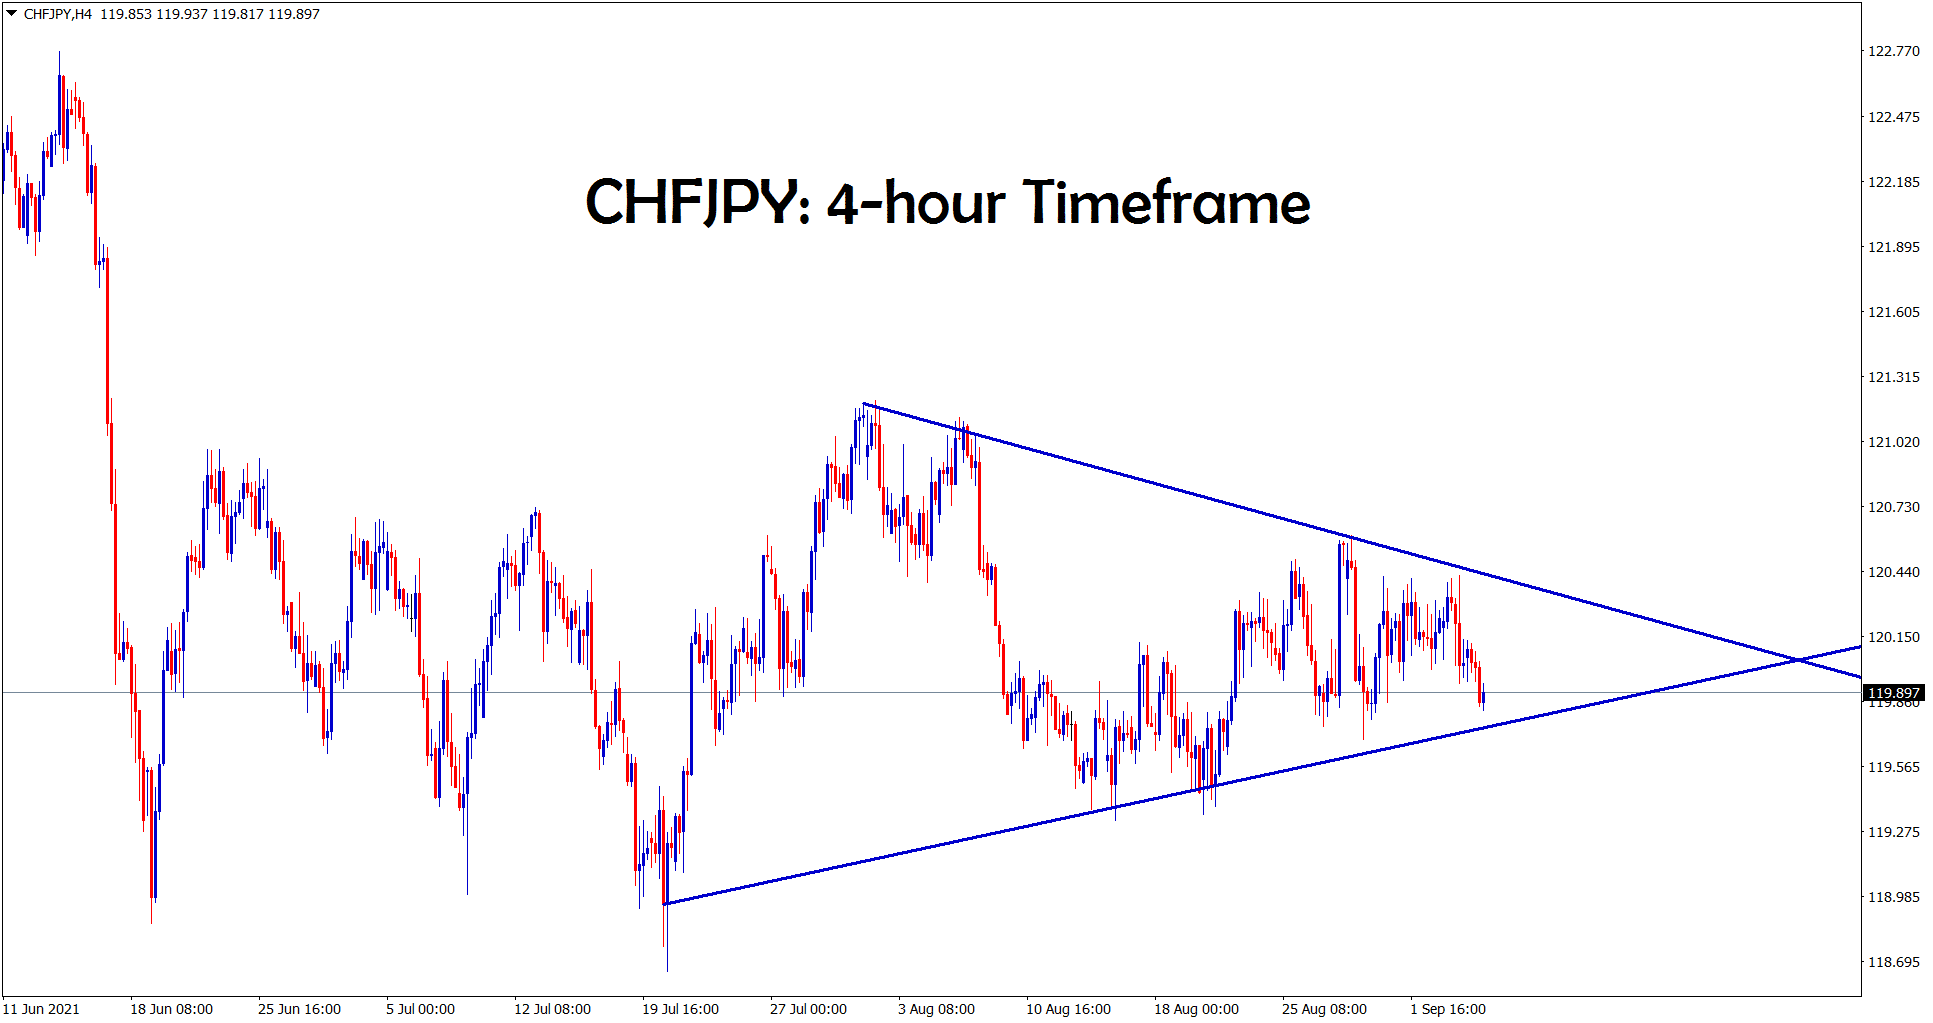 CHFJPY is ranging and formed a symmetrical triangle pattern in the 4 hour timeframe